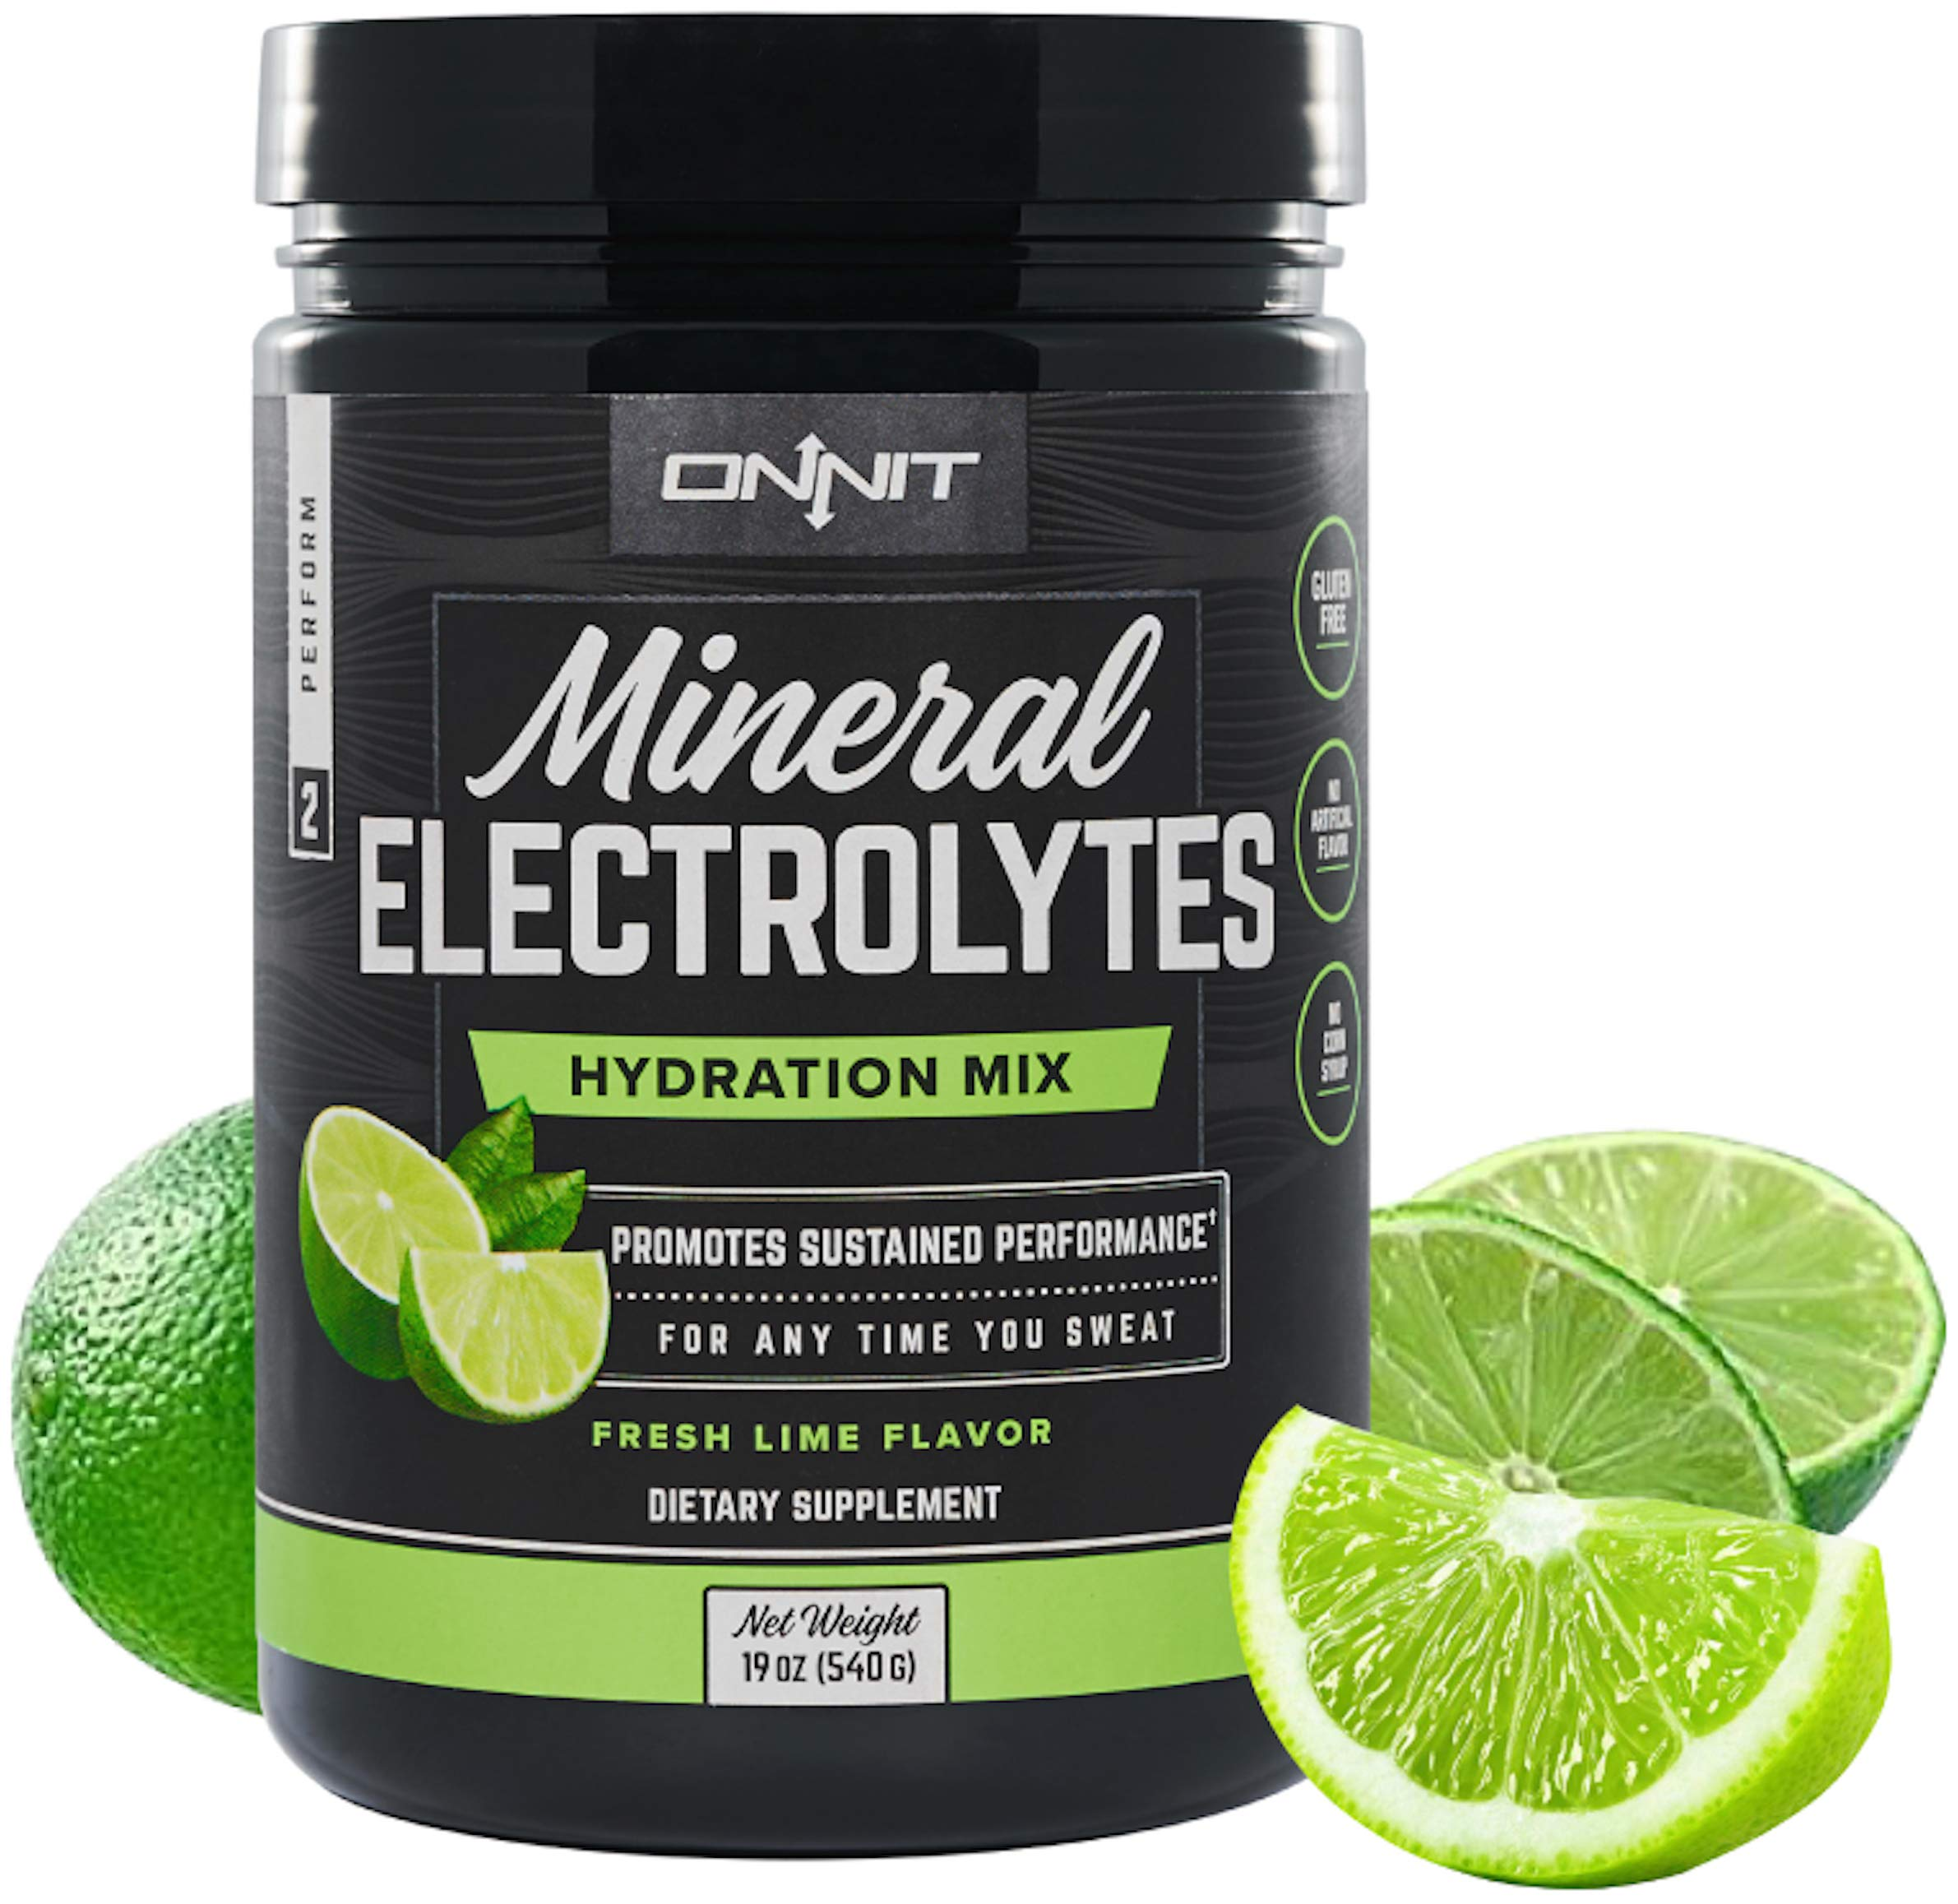 Onnit Electrolyte Powder - Keto Friendly, Low Sugar Hydration Powder with Potassium Citrate, Sodium Bicarbonate, Chelated Magnesium Bisglycinate | Fresh Lime Flavor | 60 Servings         by ONNIT